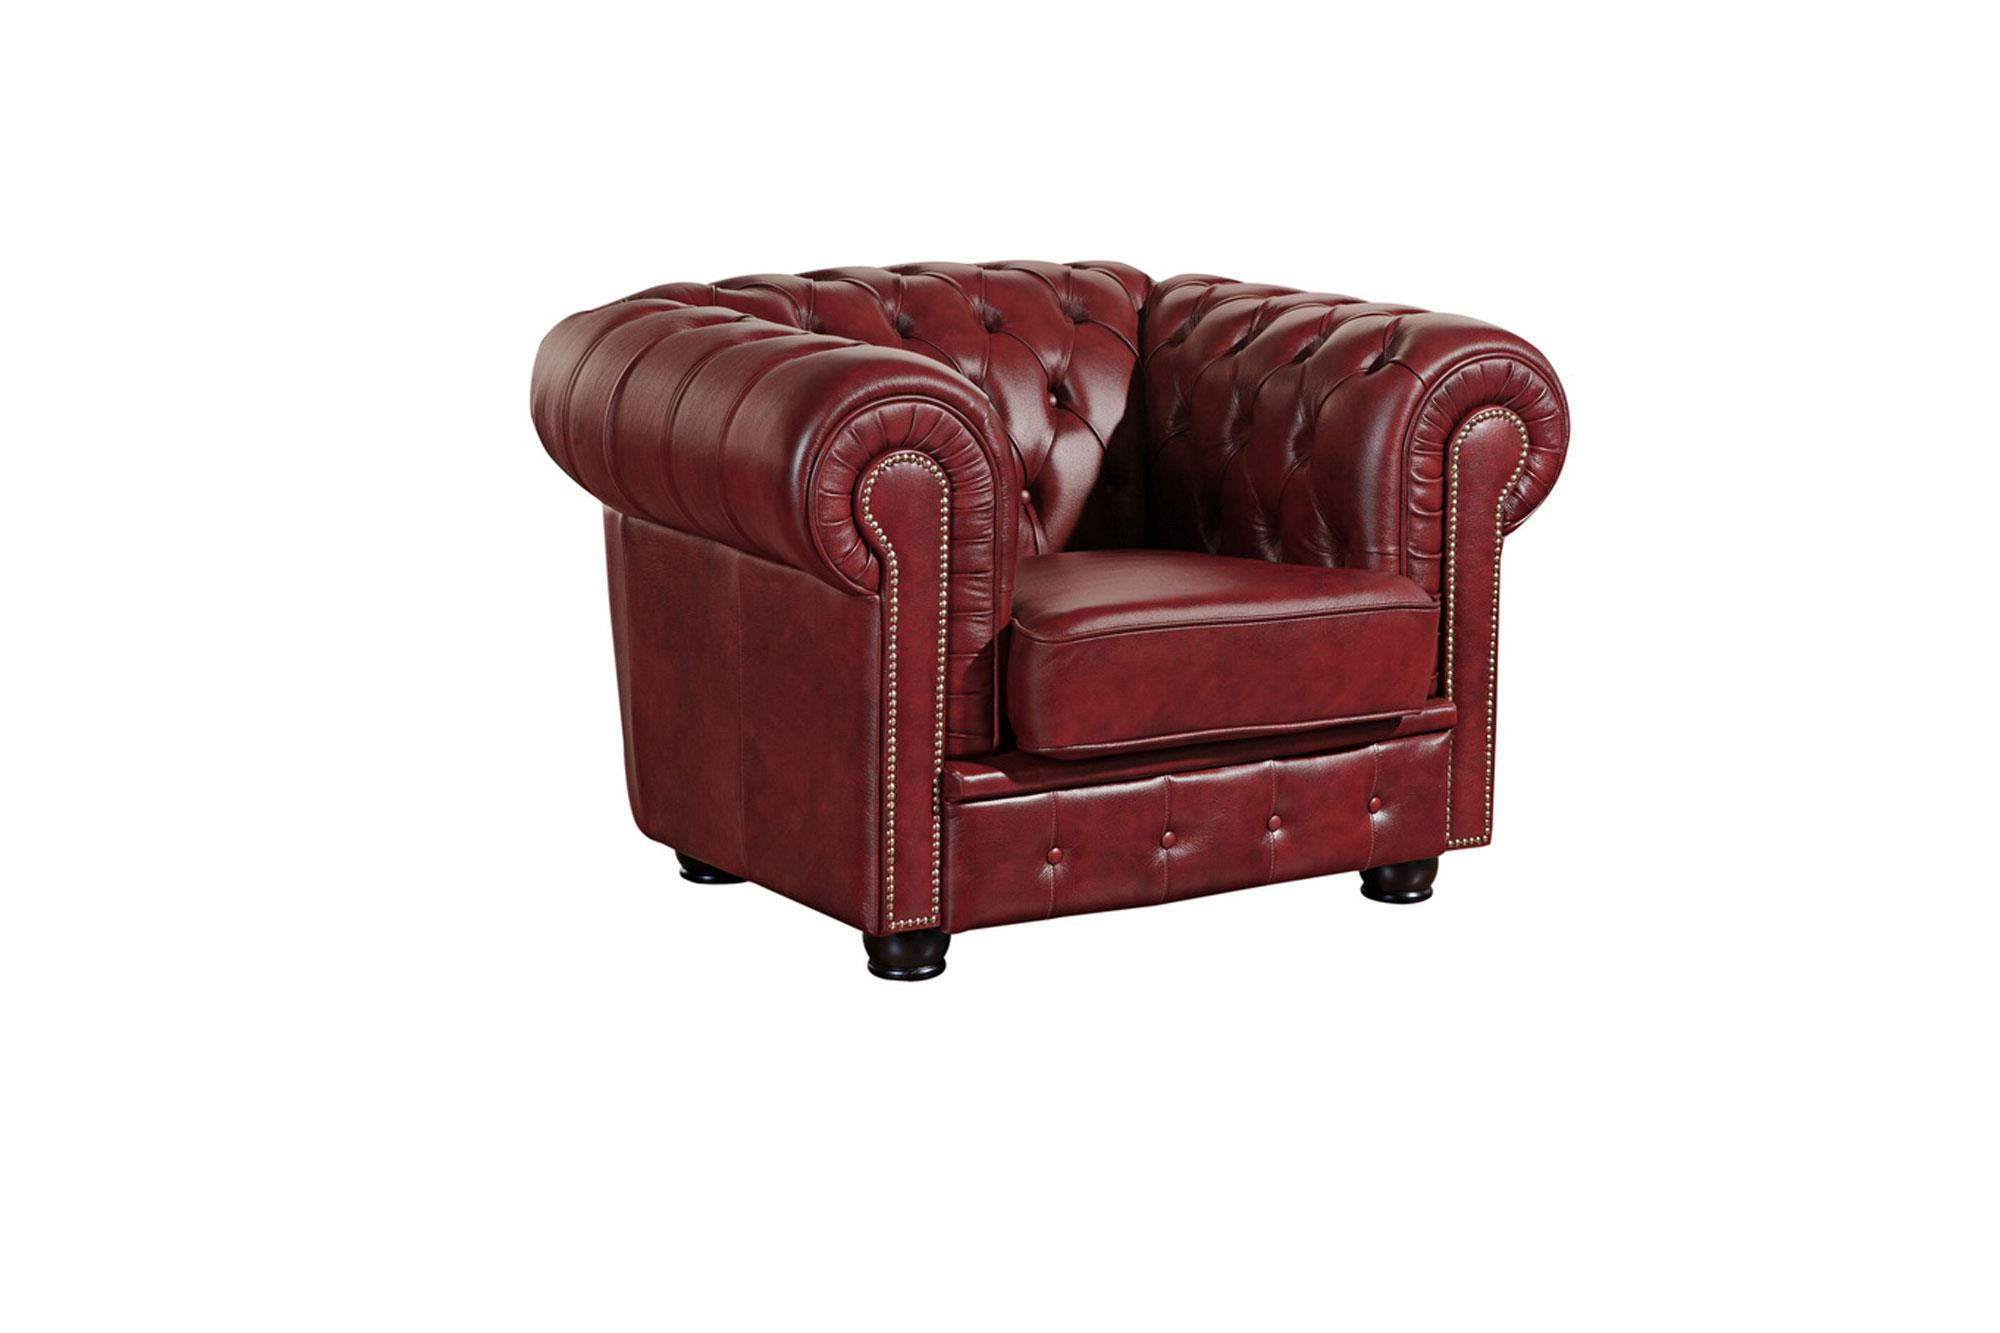 Chesterfield Sessel Rot Chesterfield Sessel Norwin In Wischleder Braun Oder Rot Von Max Winzer